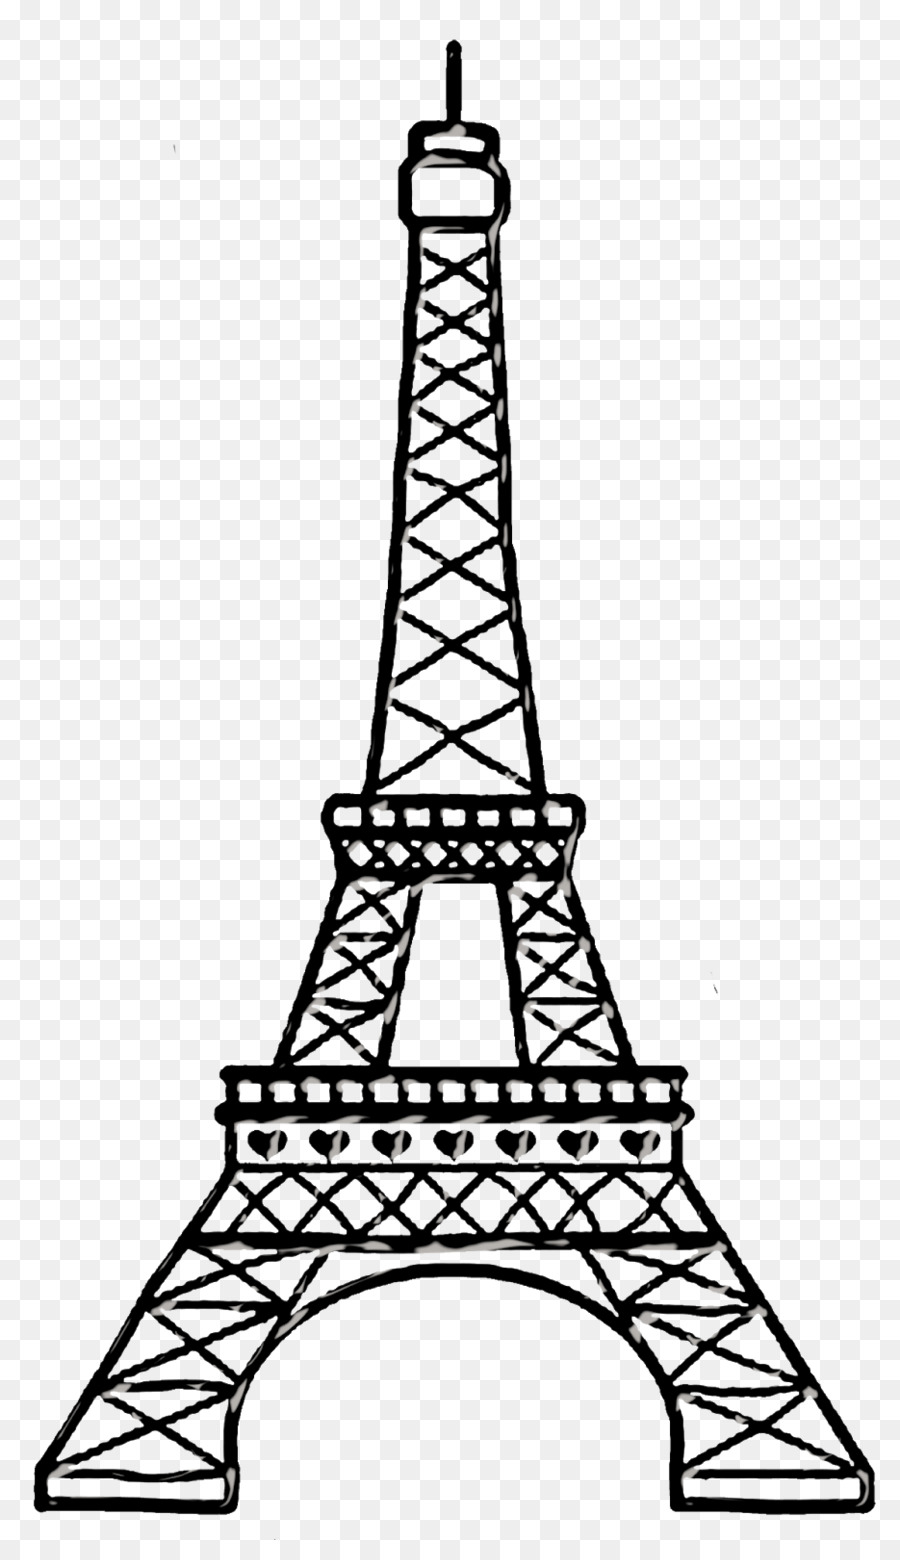 how to draw the eiffel tower cartoon eiffel tower cartoon drawing easy draw eiffel tower cartoon the eiffel draw tower to how